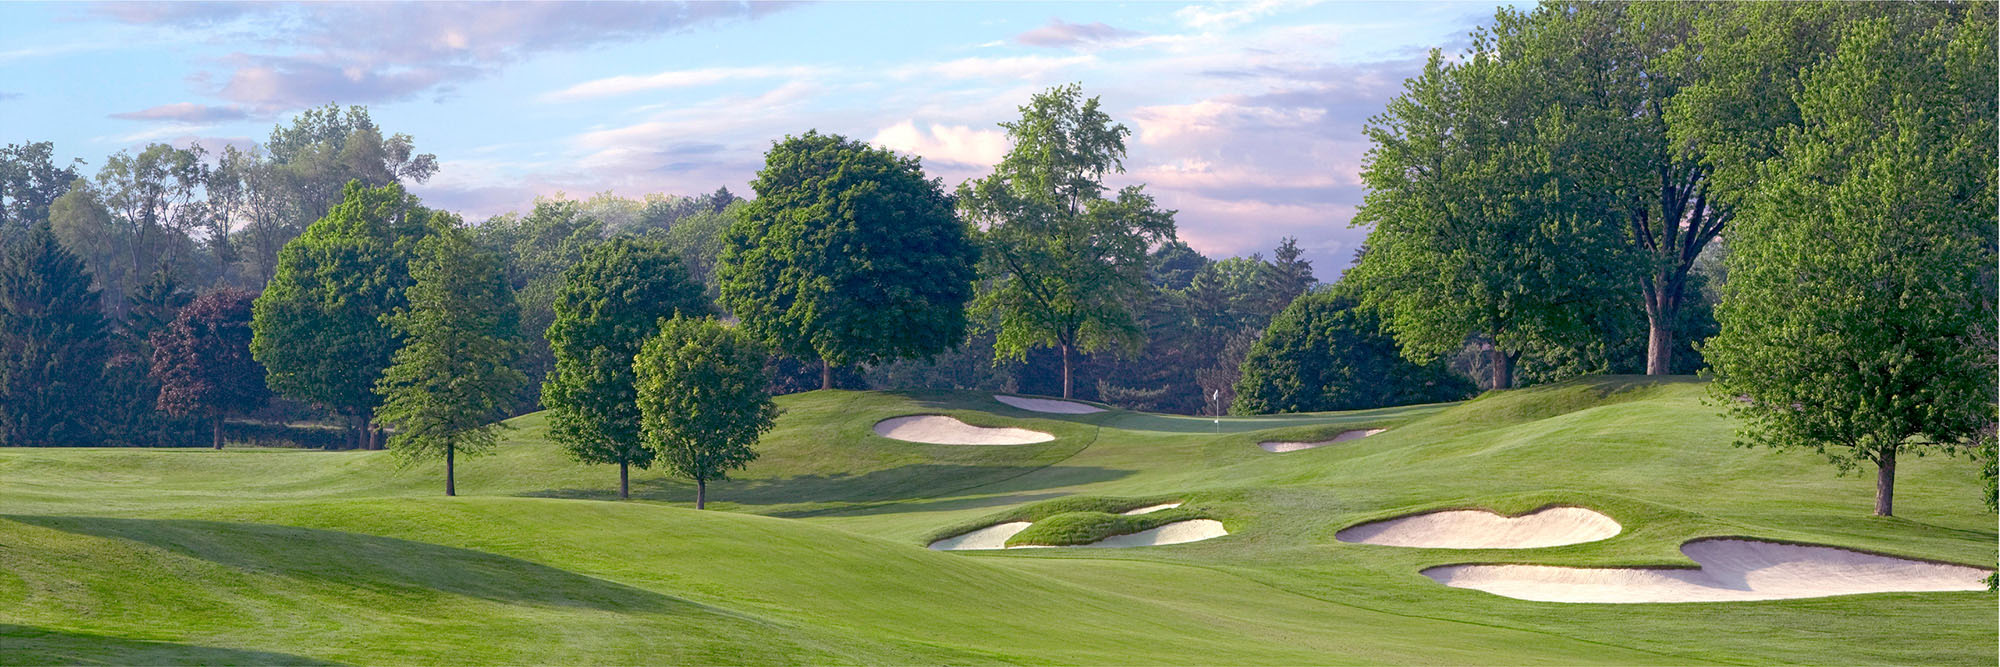 Golf Course Image - Oakland Hills No. 11